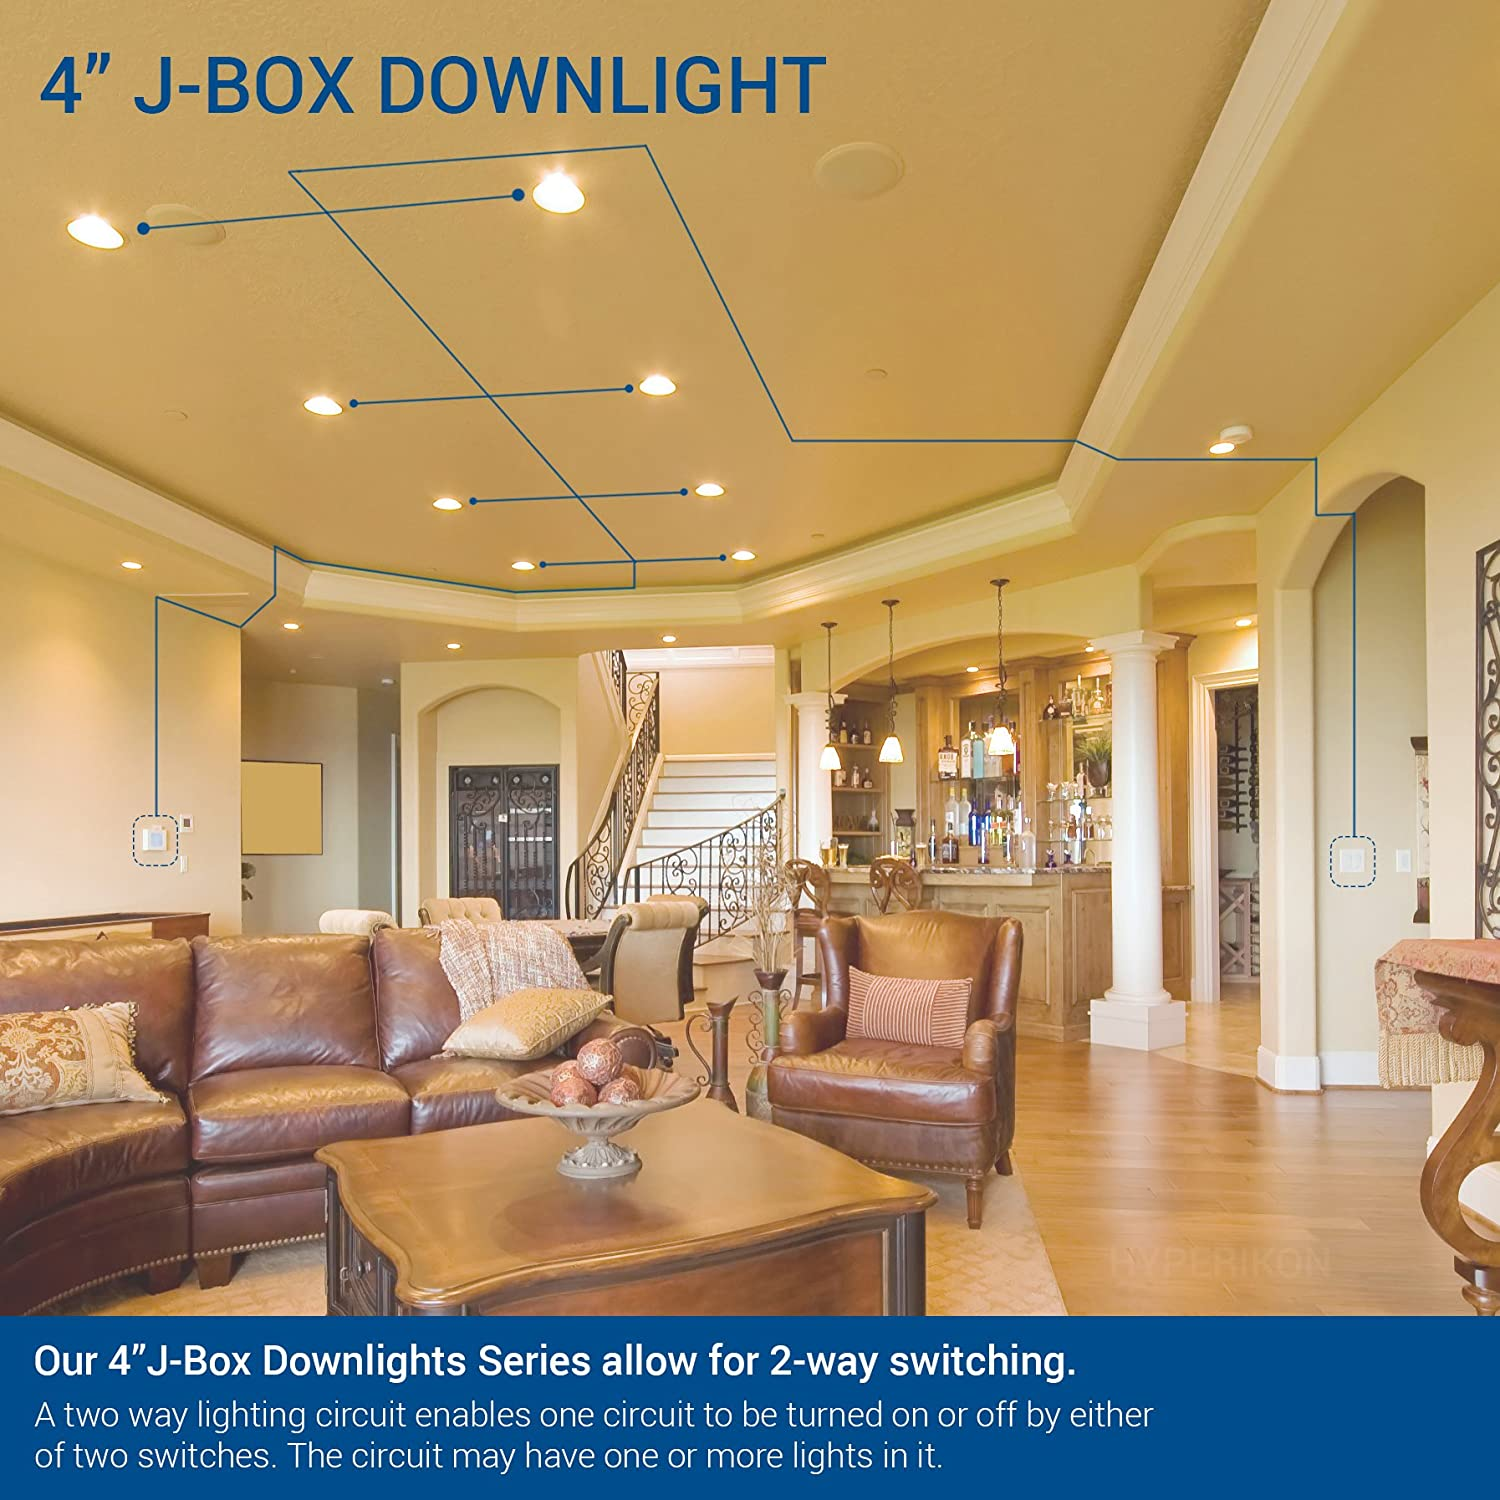 8.5W 18 Pack Dimmable Daylight Glow Slim Retrofit Airtight Downlight for Dry//Damp Locations 4000K 60W Equivalent HyperJBDL4-40 UL Hyperikon 4 Inch Recessed LED Downlight with Junction Box Energy Star Inc